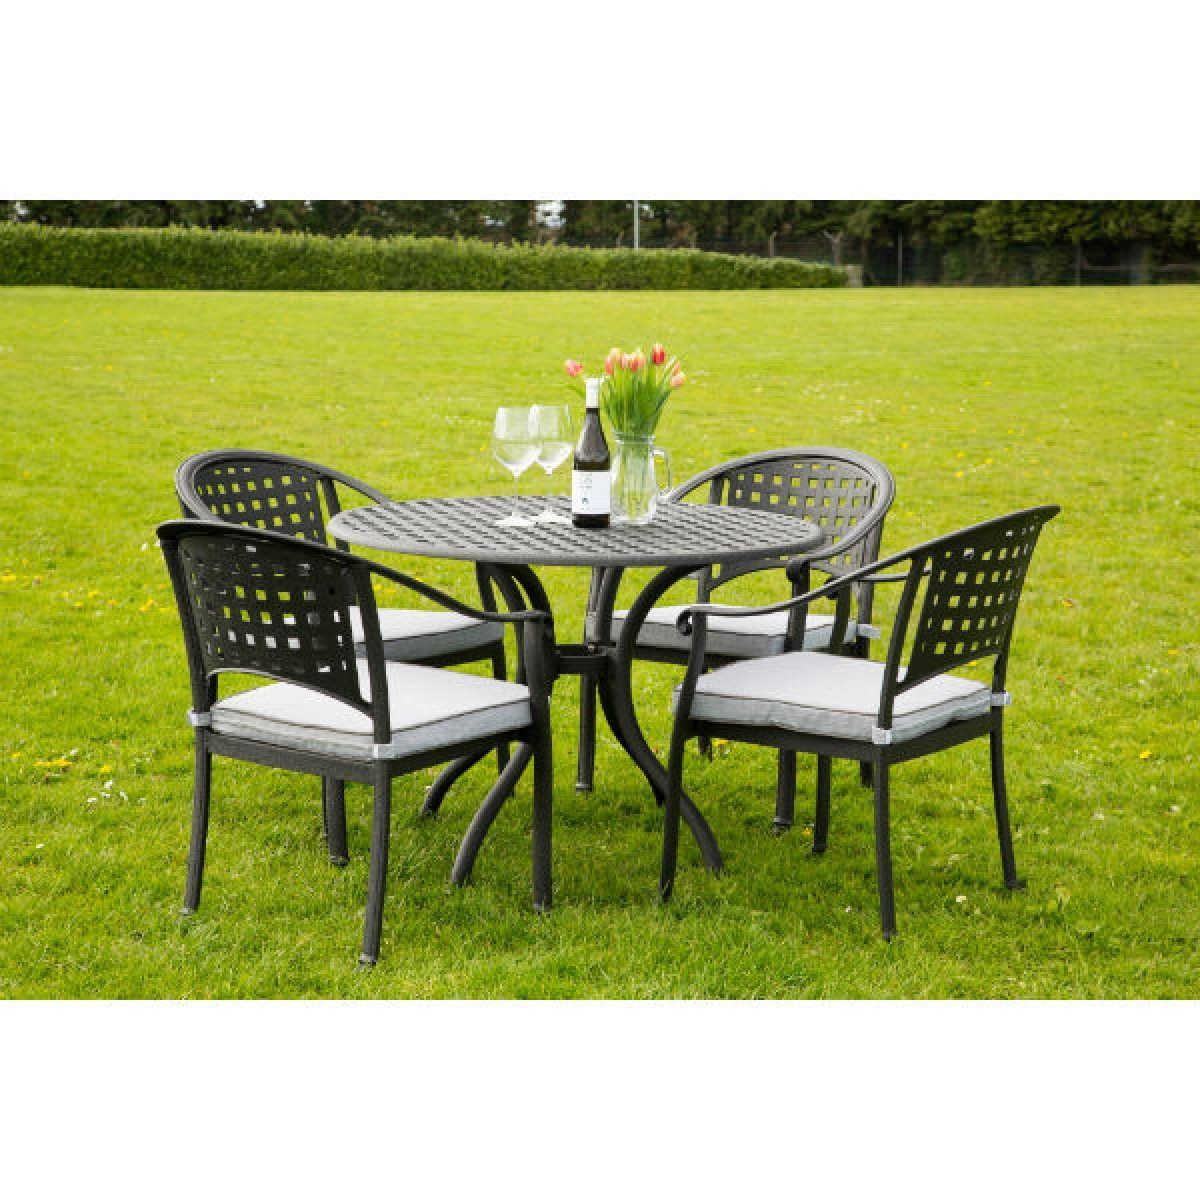 chelmsford 4 seater cast aluminium garden furniture set - Garden Furniture 4 Seater